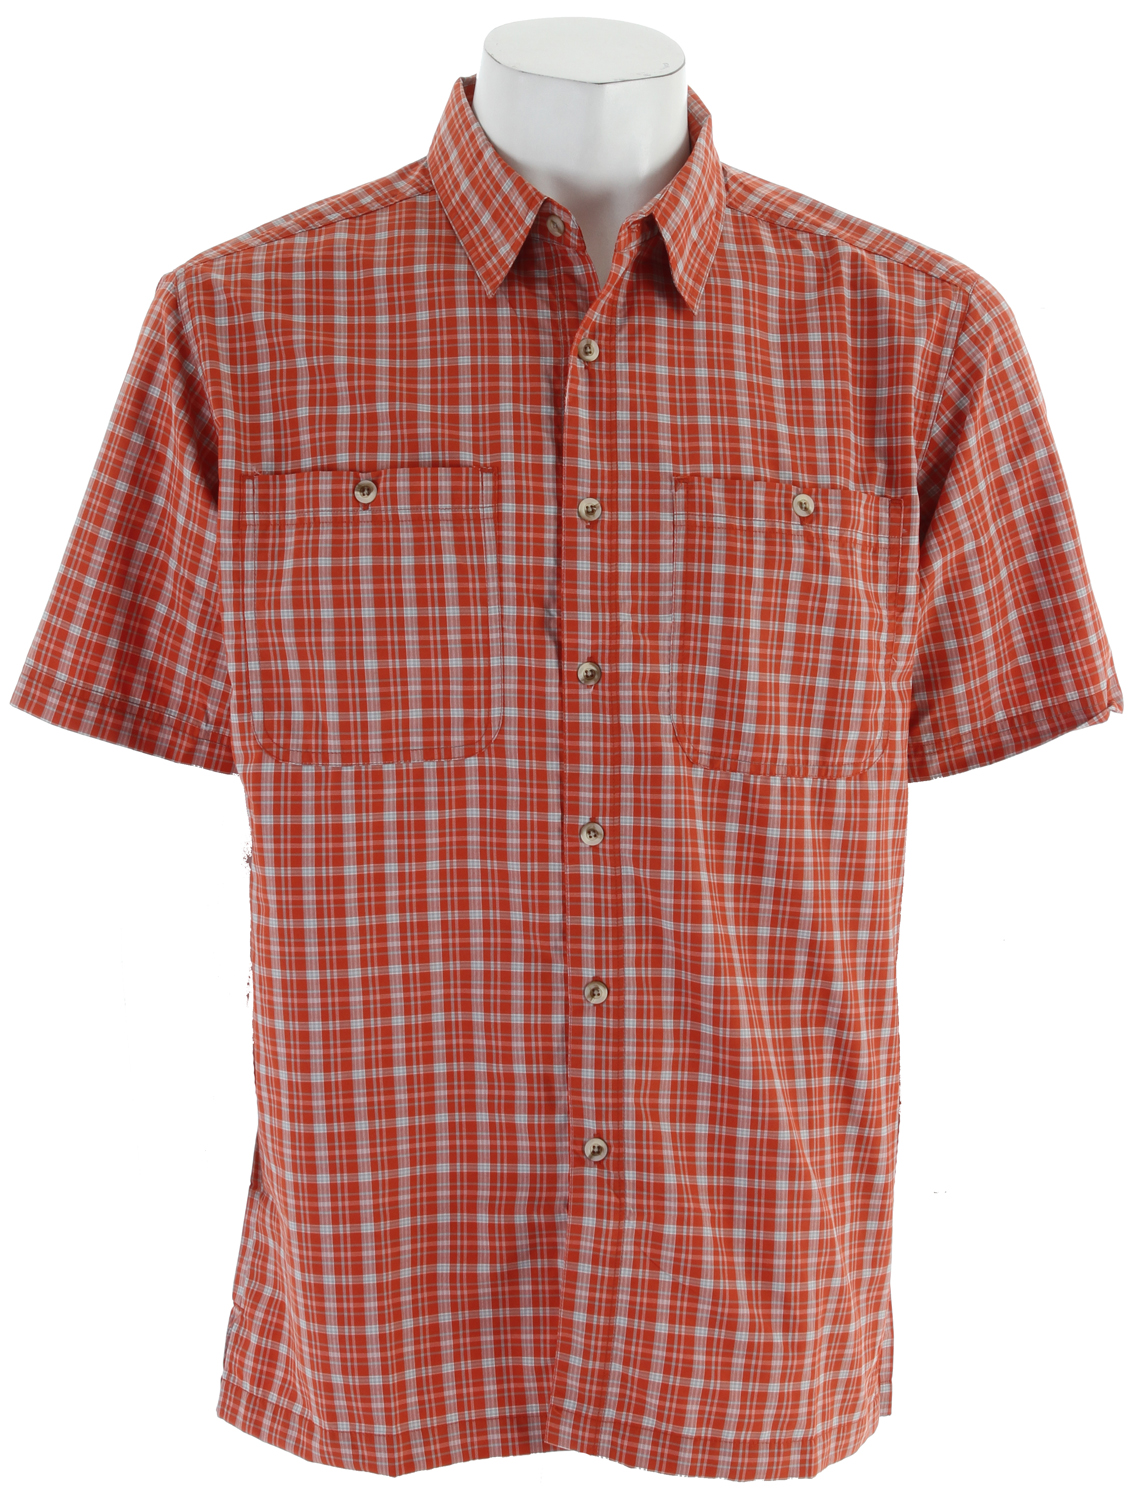 "Throw on the Richmond Point Short Sleeve Shirt for all your long afternoon walks. No matter at the local restaurant or your backyard bbq, this classic plaid will keep you cool with the sun on your back.Key Features of the White Sierra Richmond Point Shirt: 64% nylon 36% polyester woven plaid UPF 30 Wicking 2 chest pockets 31.5"" back length - $27.95"